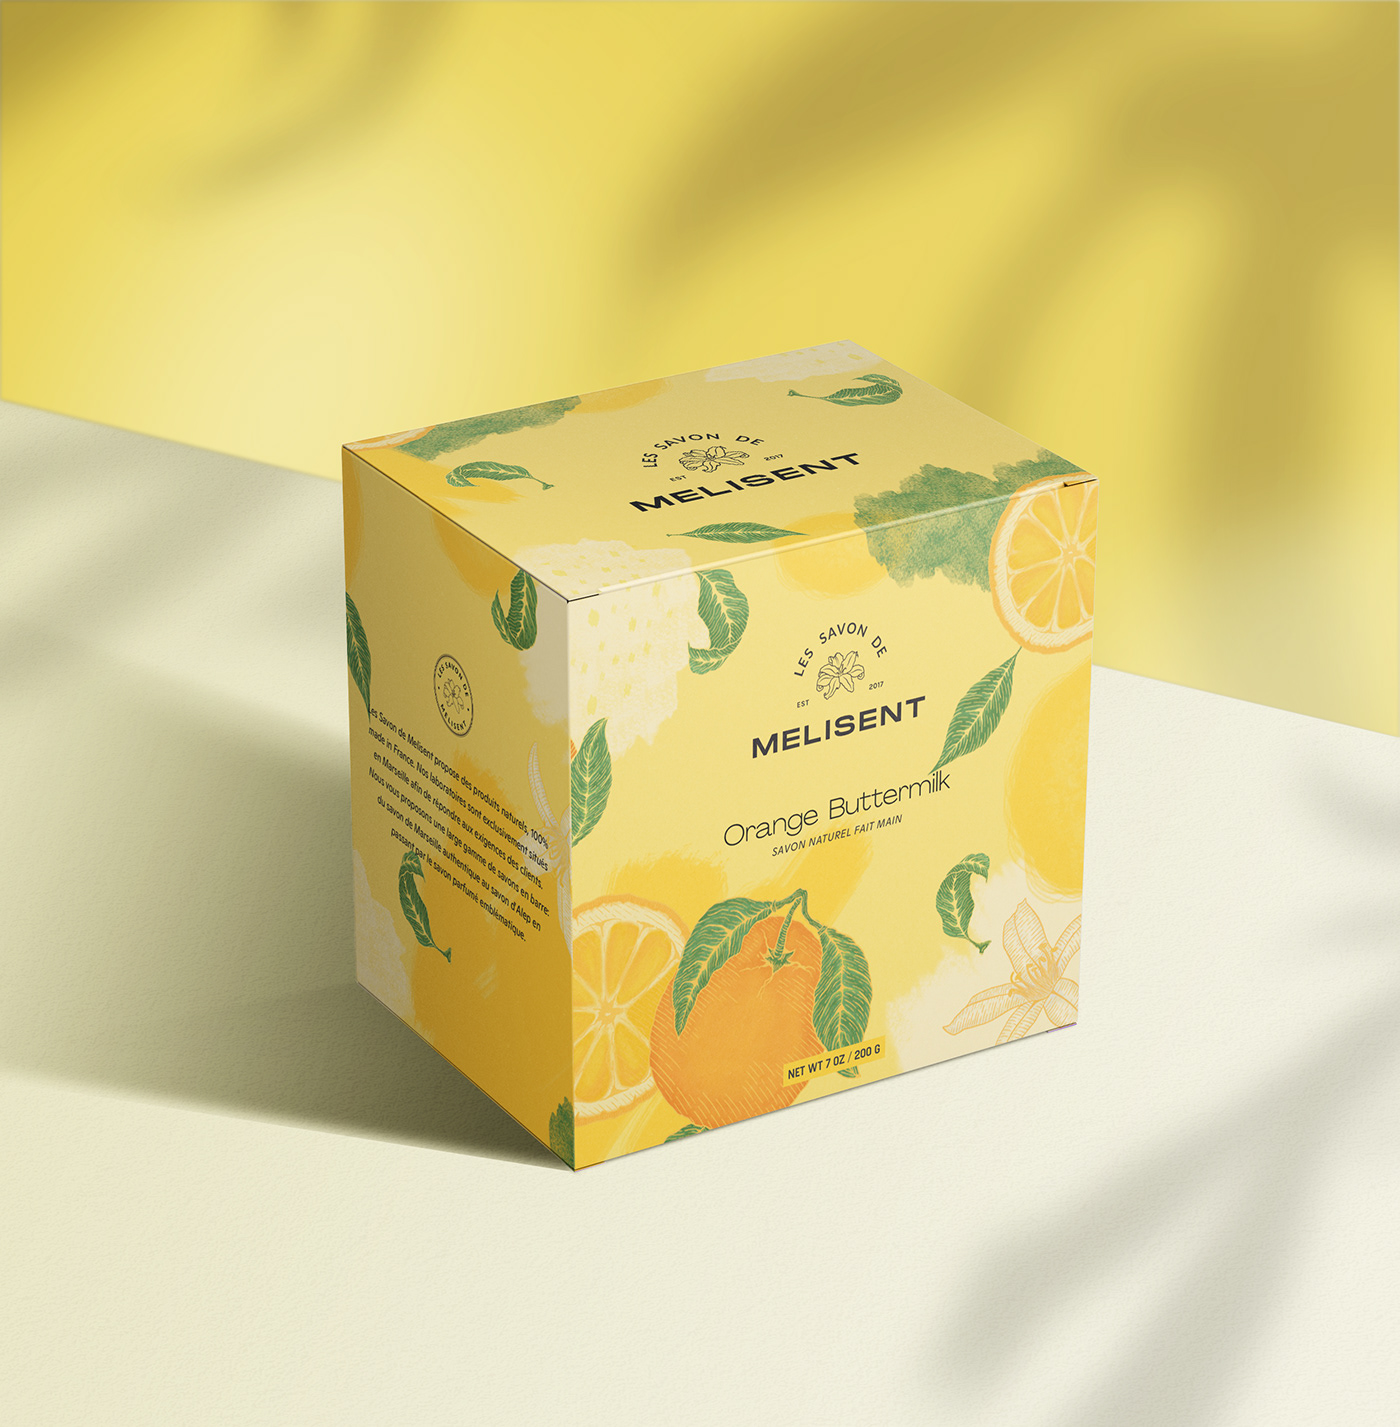 branding  color design natural organic Packaging product savon soap soft